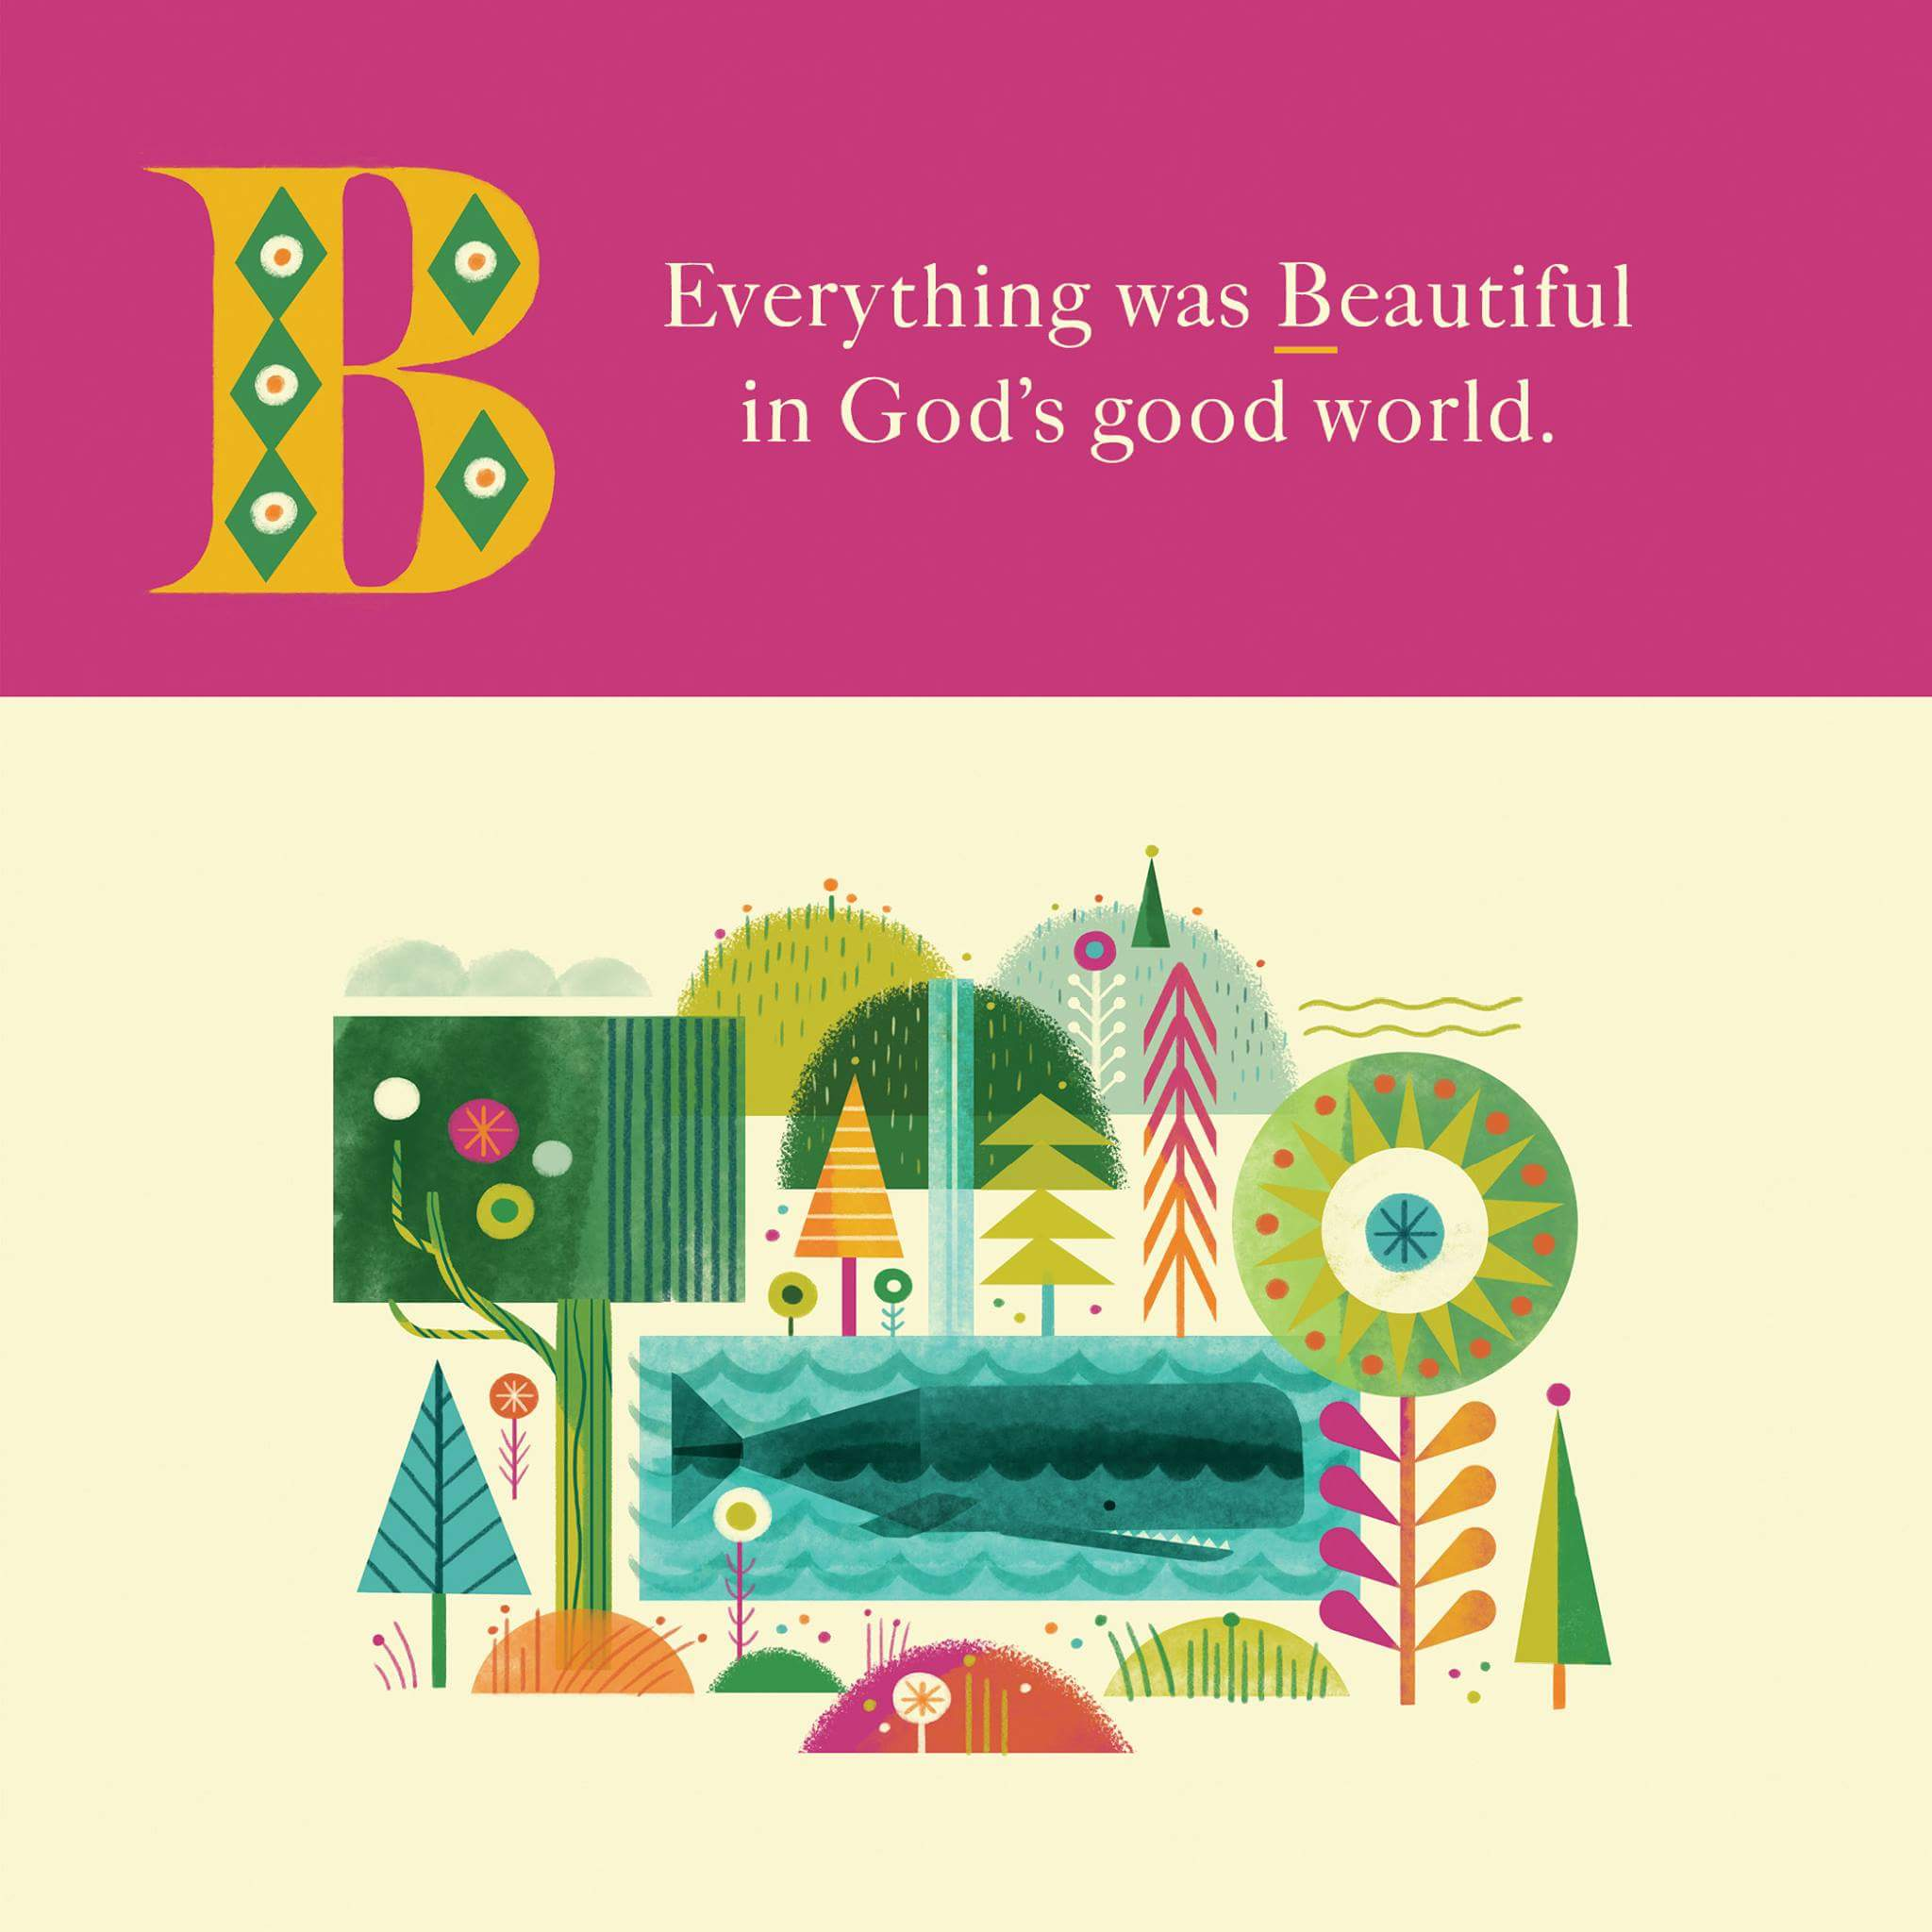 Everything was beautiful in God's good world.